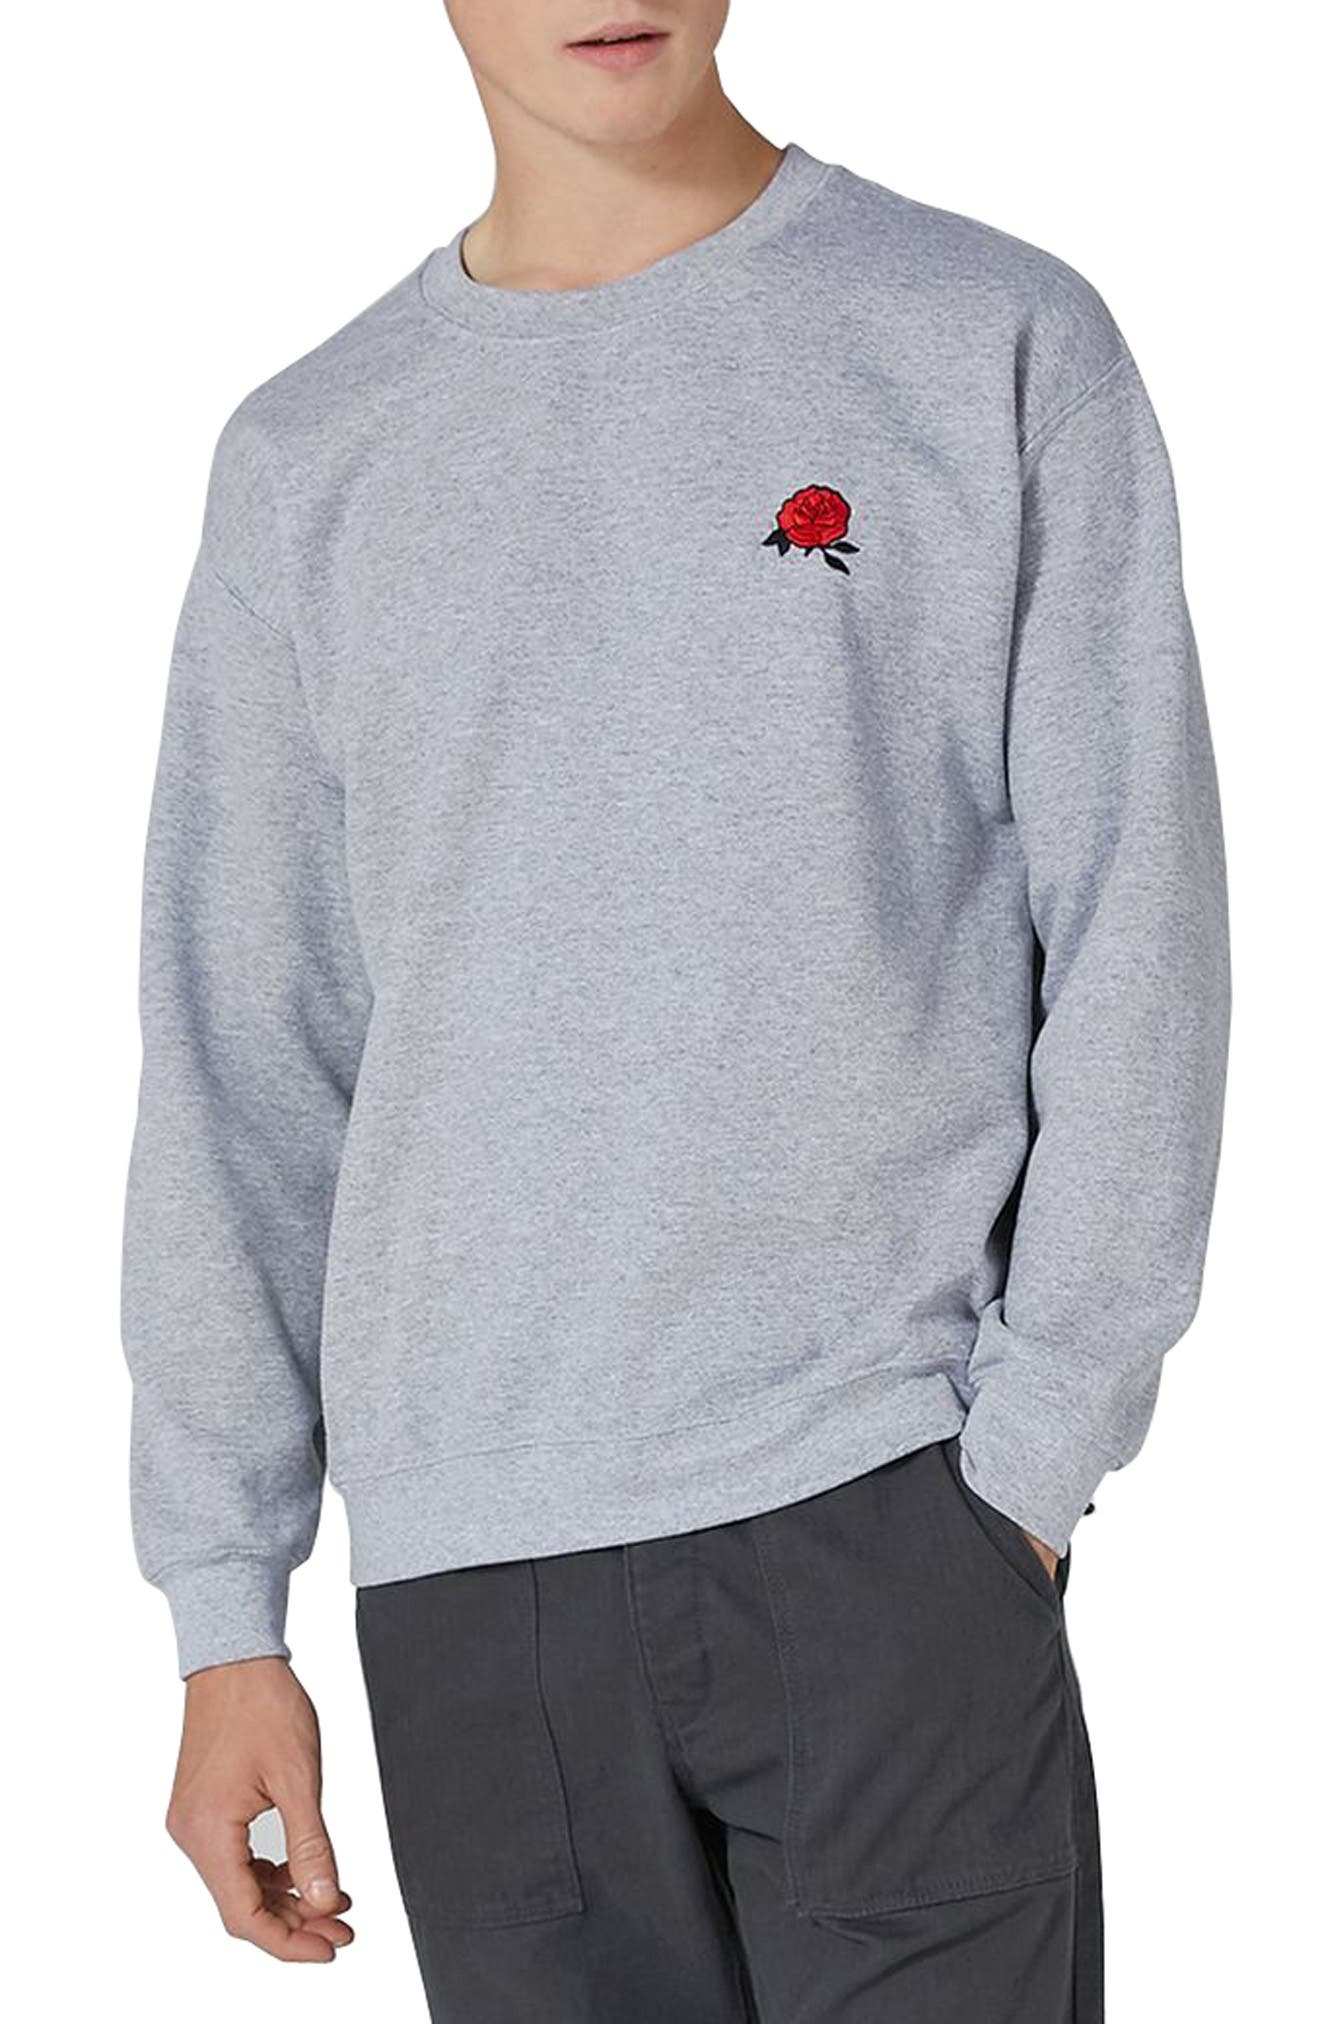 Rose Embroidered Sweatshirt,                         Main,                         color, Light Grey